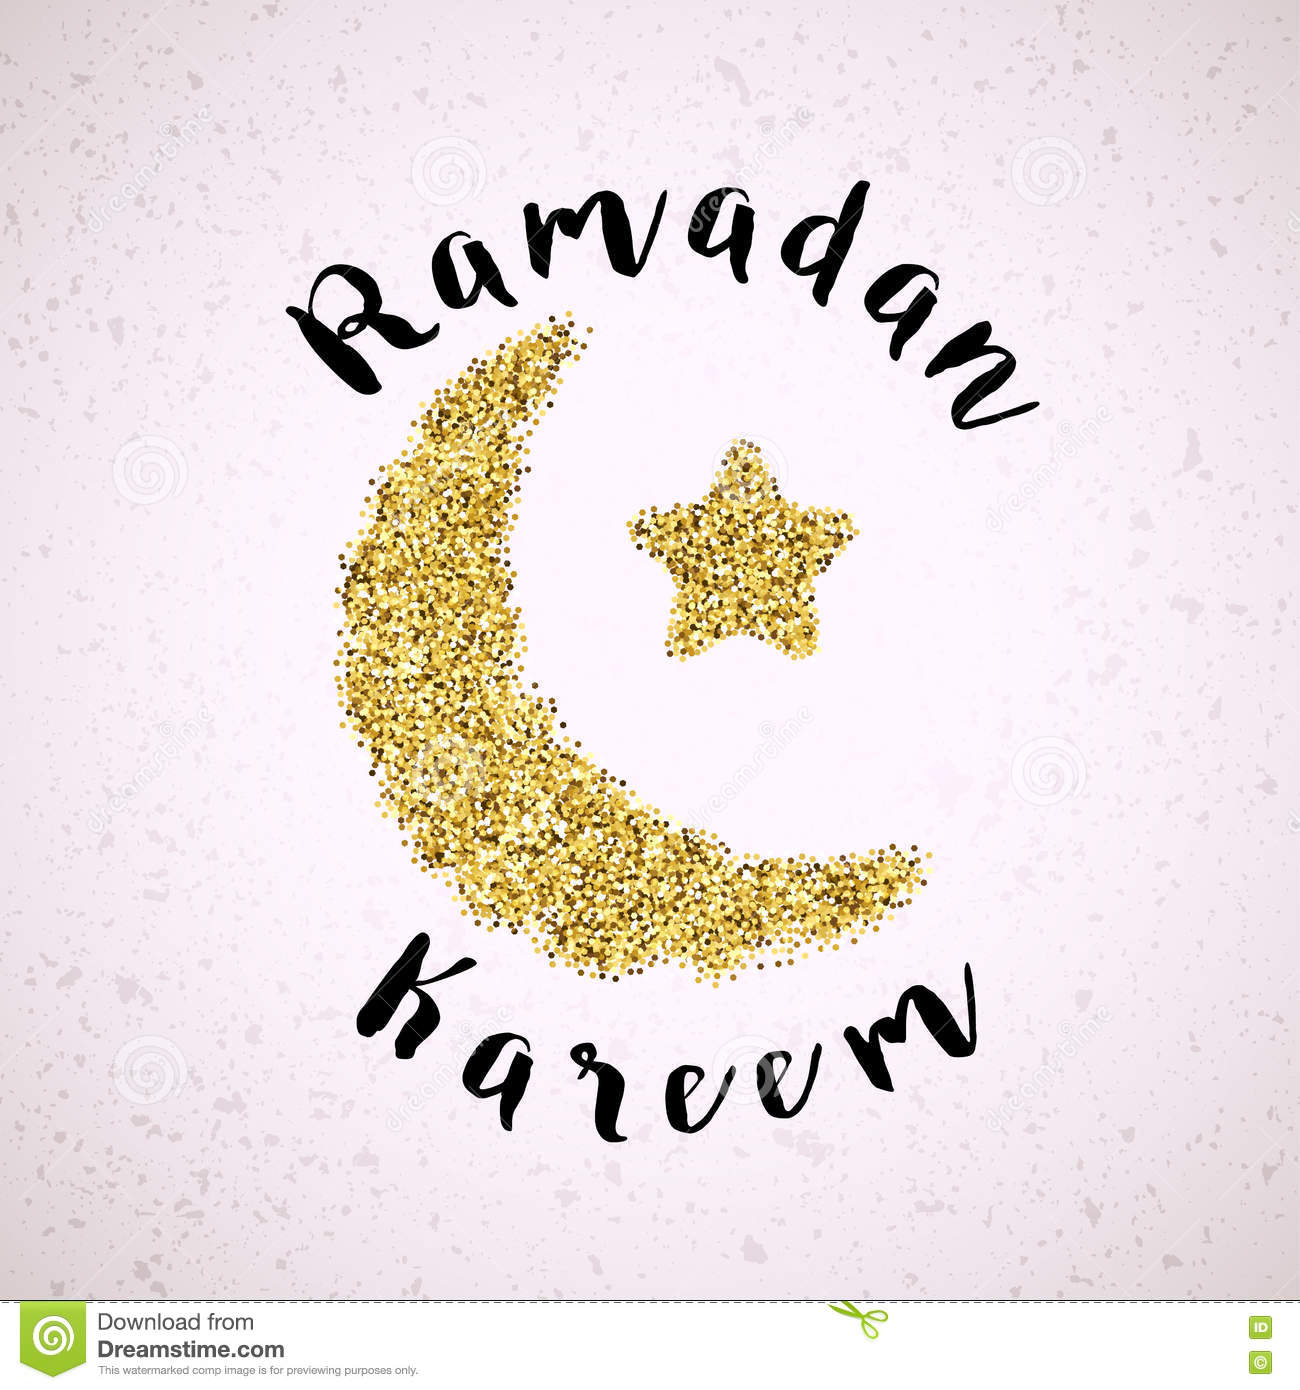 Ramadan greeting background of gold crescent moon and star stock ramadan greeting background of gold crescent moon and star biocorpaavc Gallery